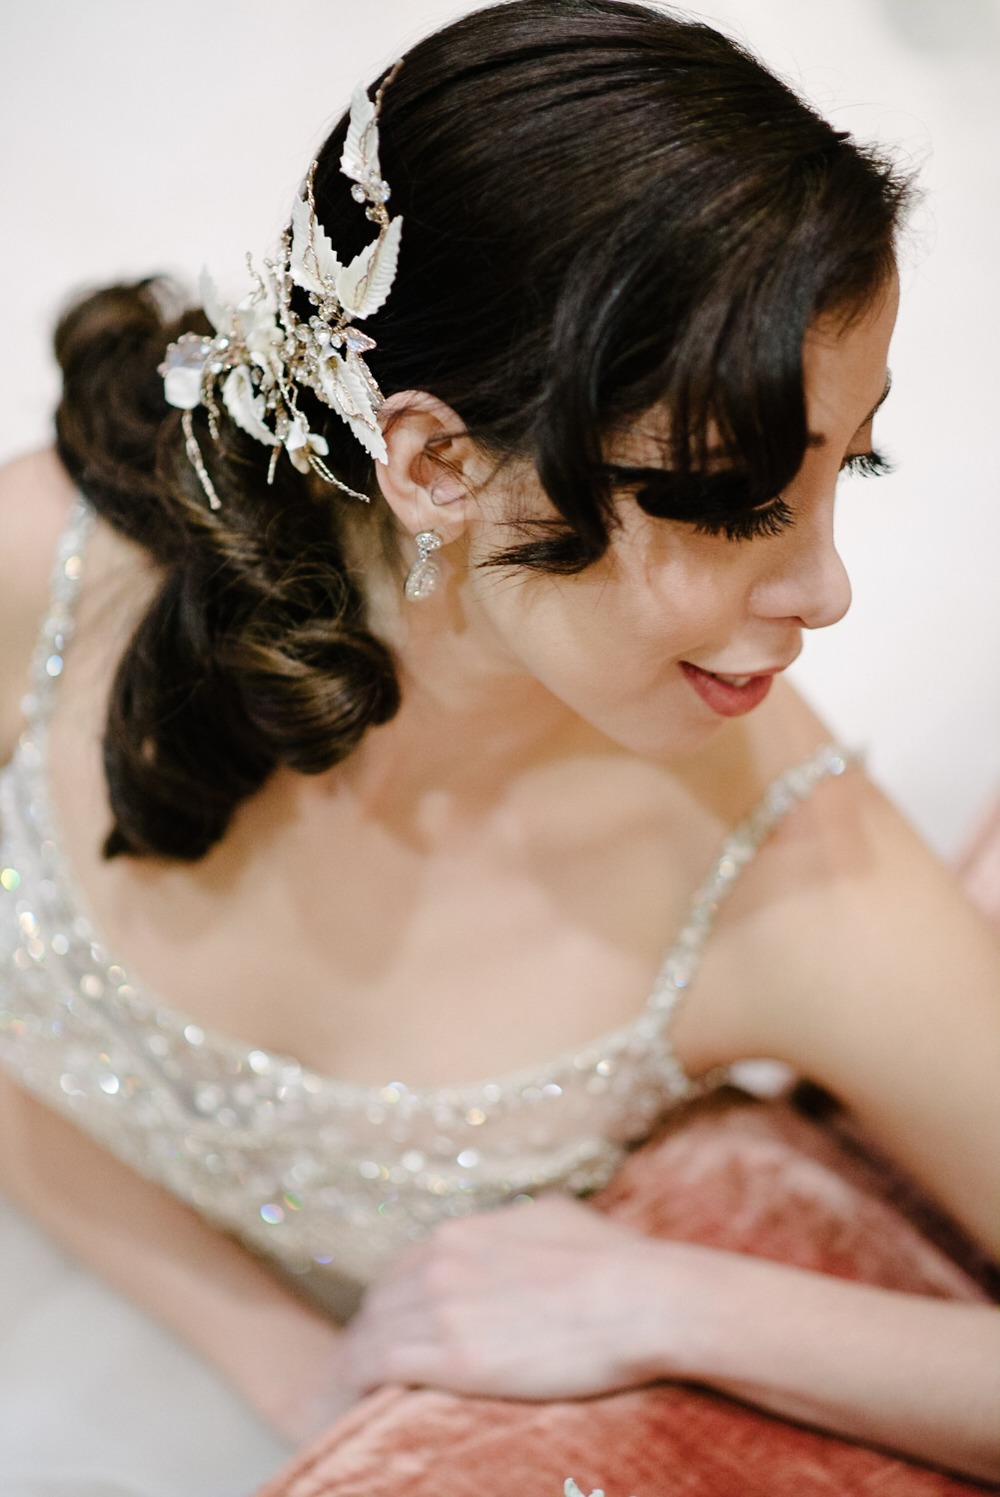 swooped back wedding hair and elegant hair piece